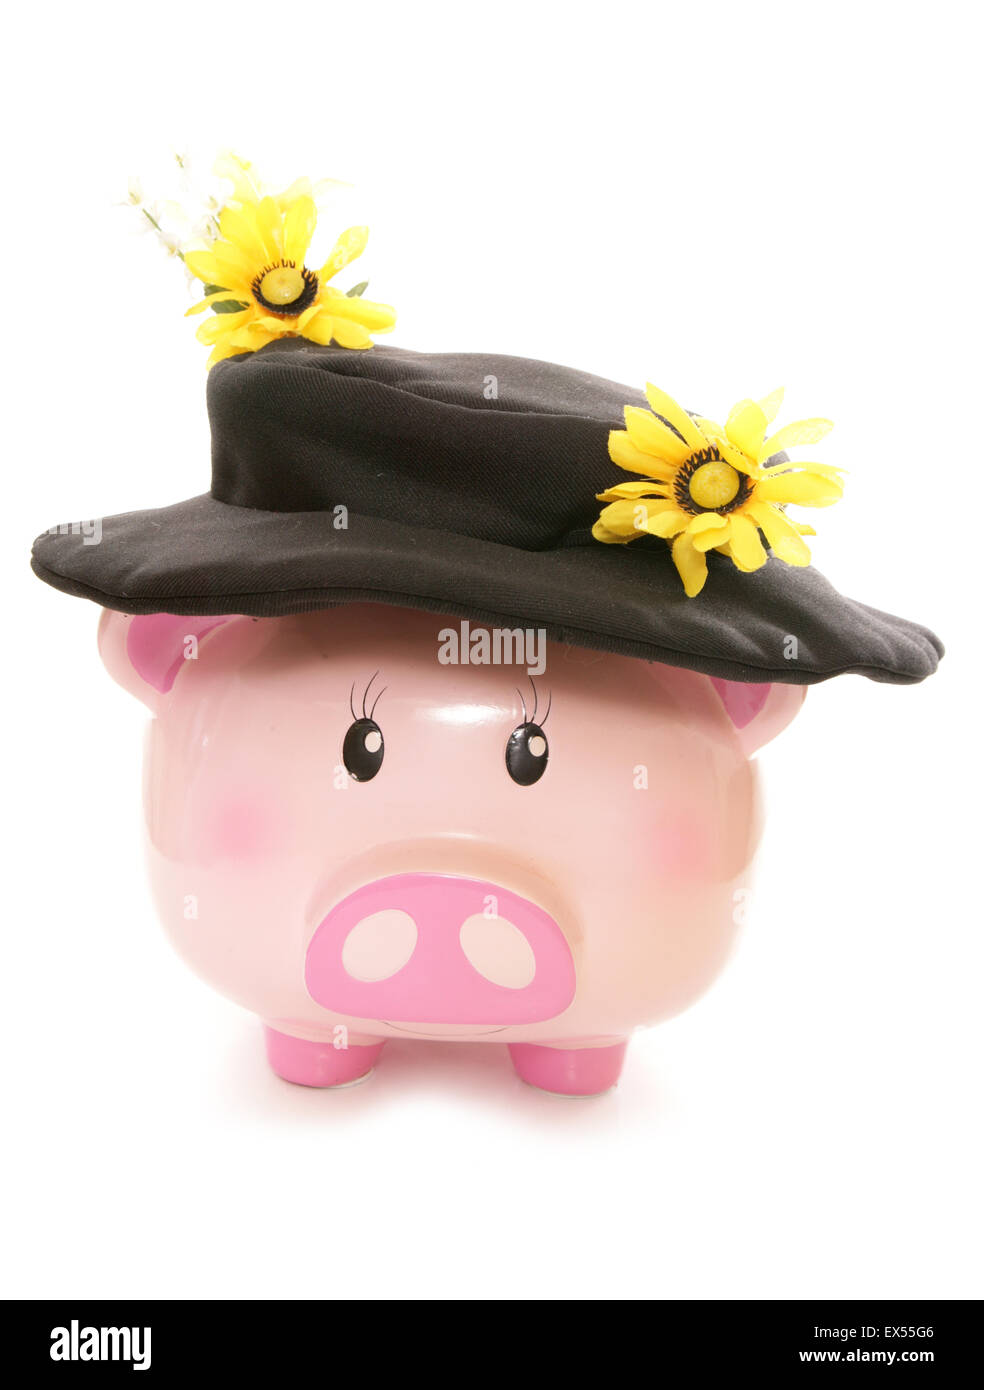 piggy bank wearing sunflower scare crow hat cutout - Stock Image